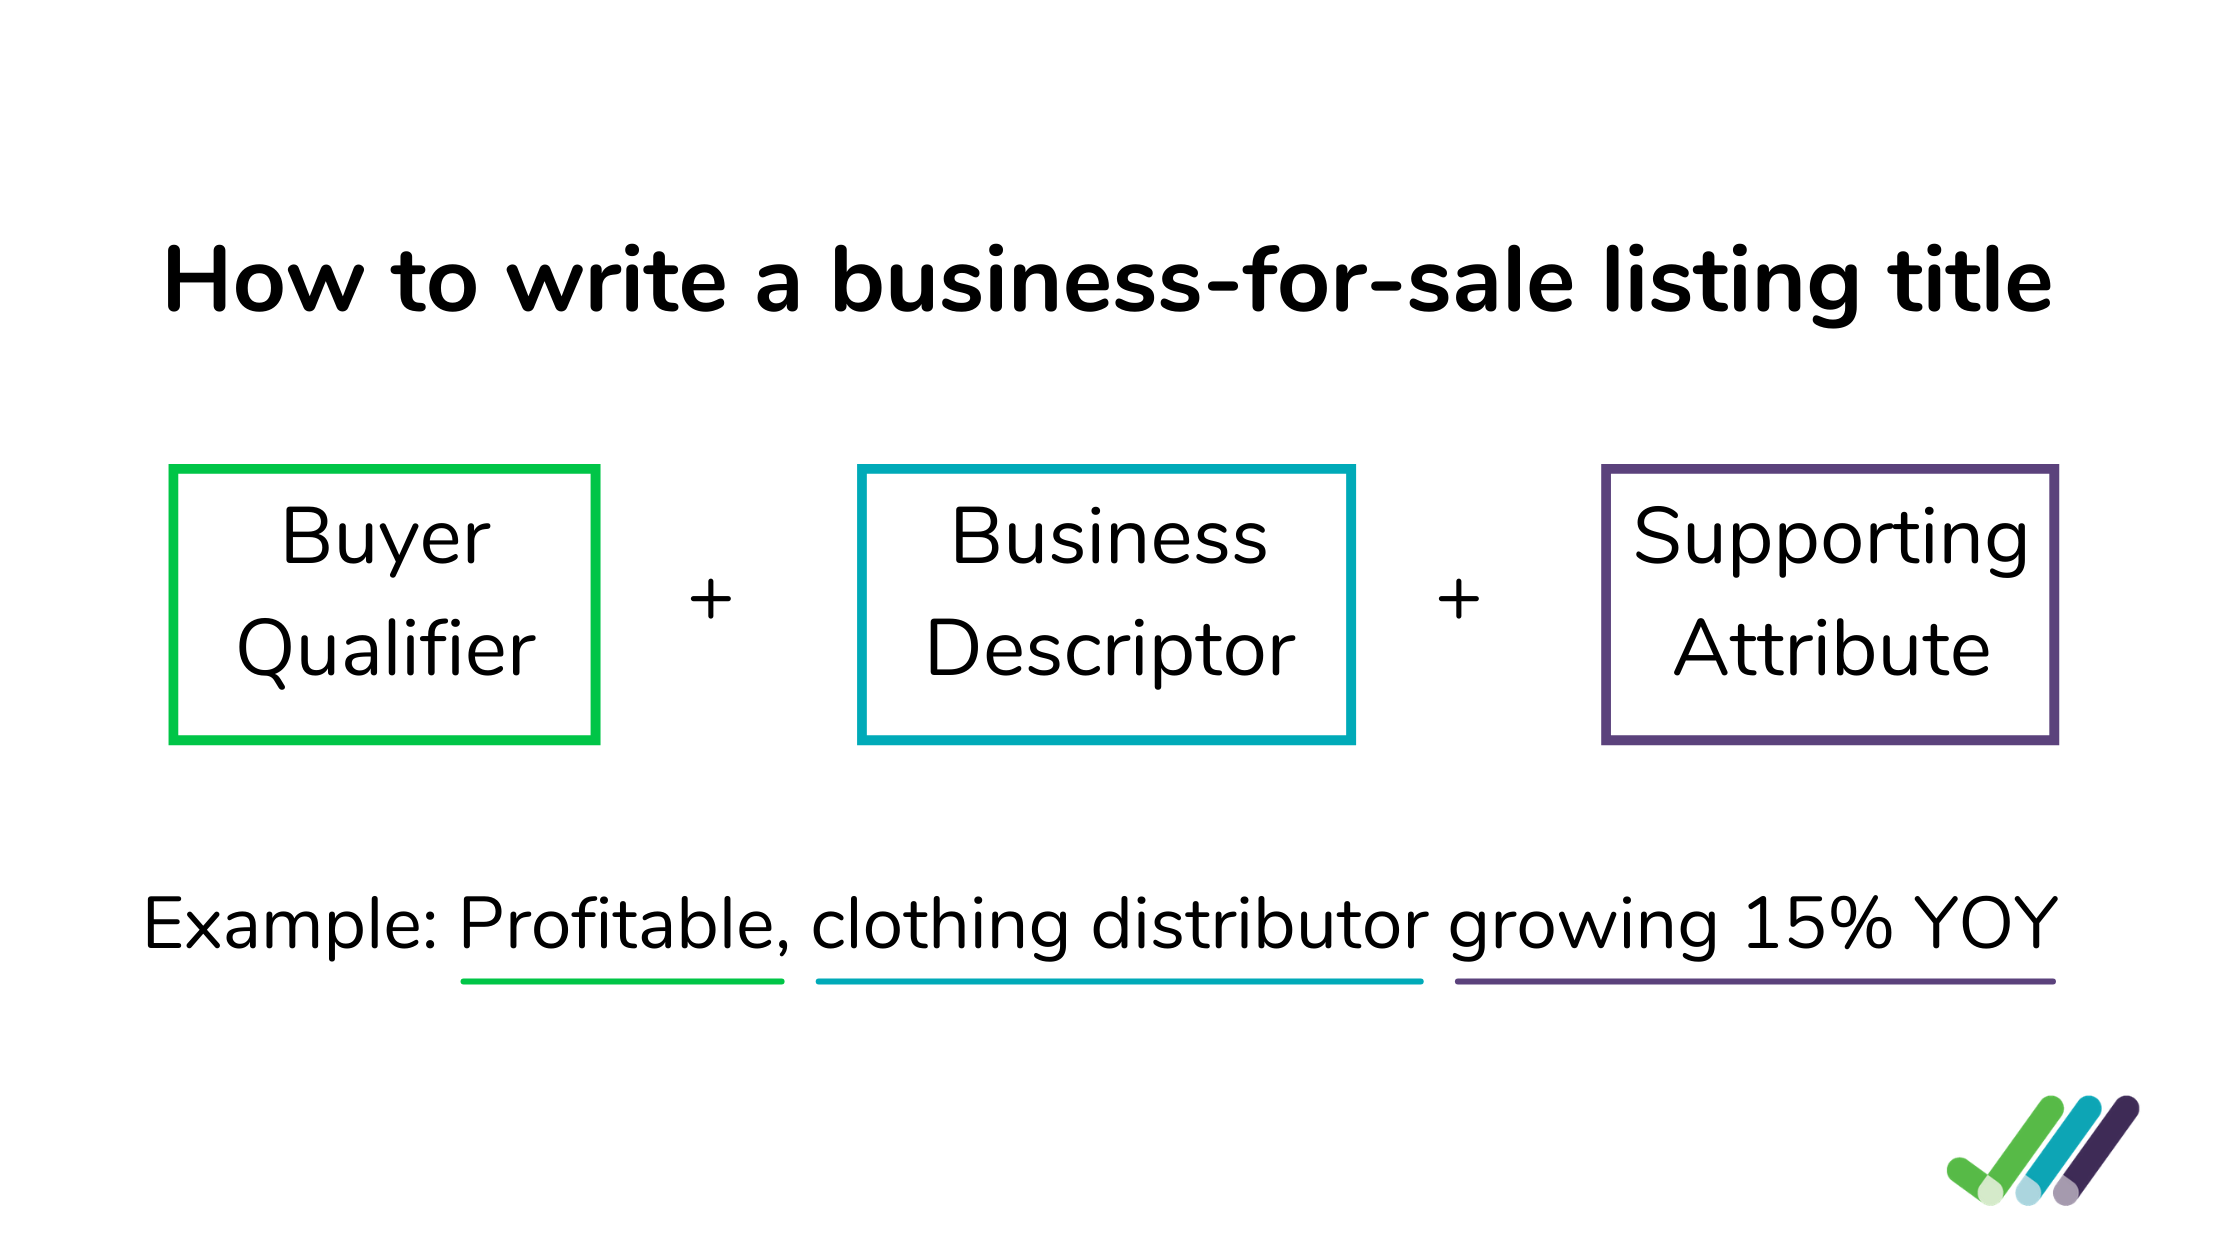 Image showing the 3 steps in writing a business-for-sale listing